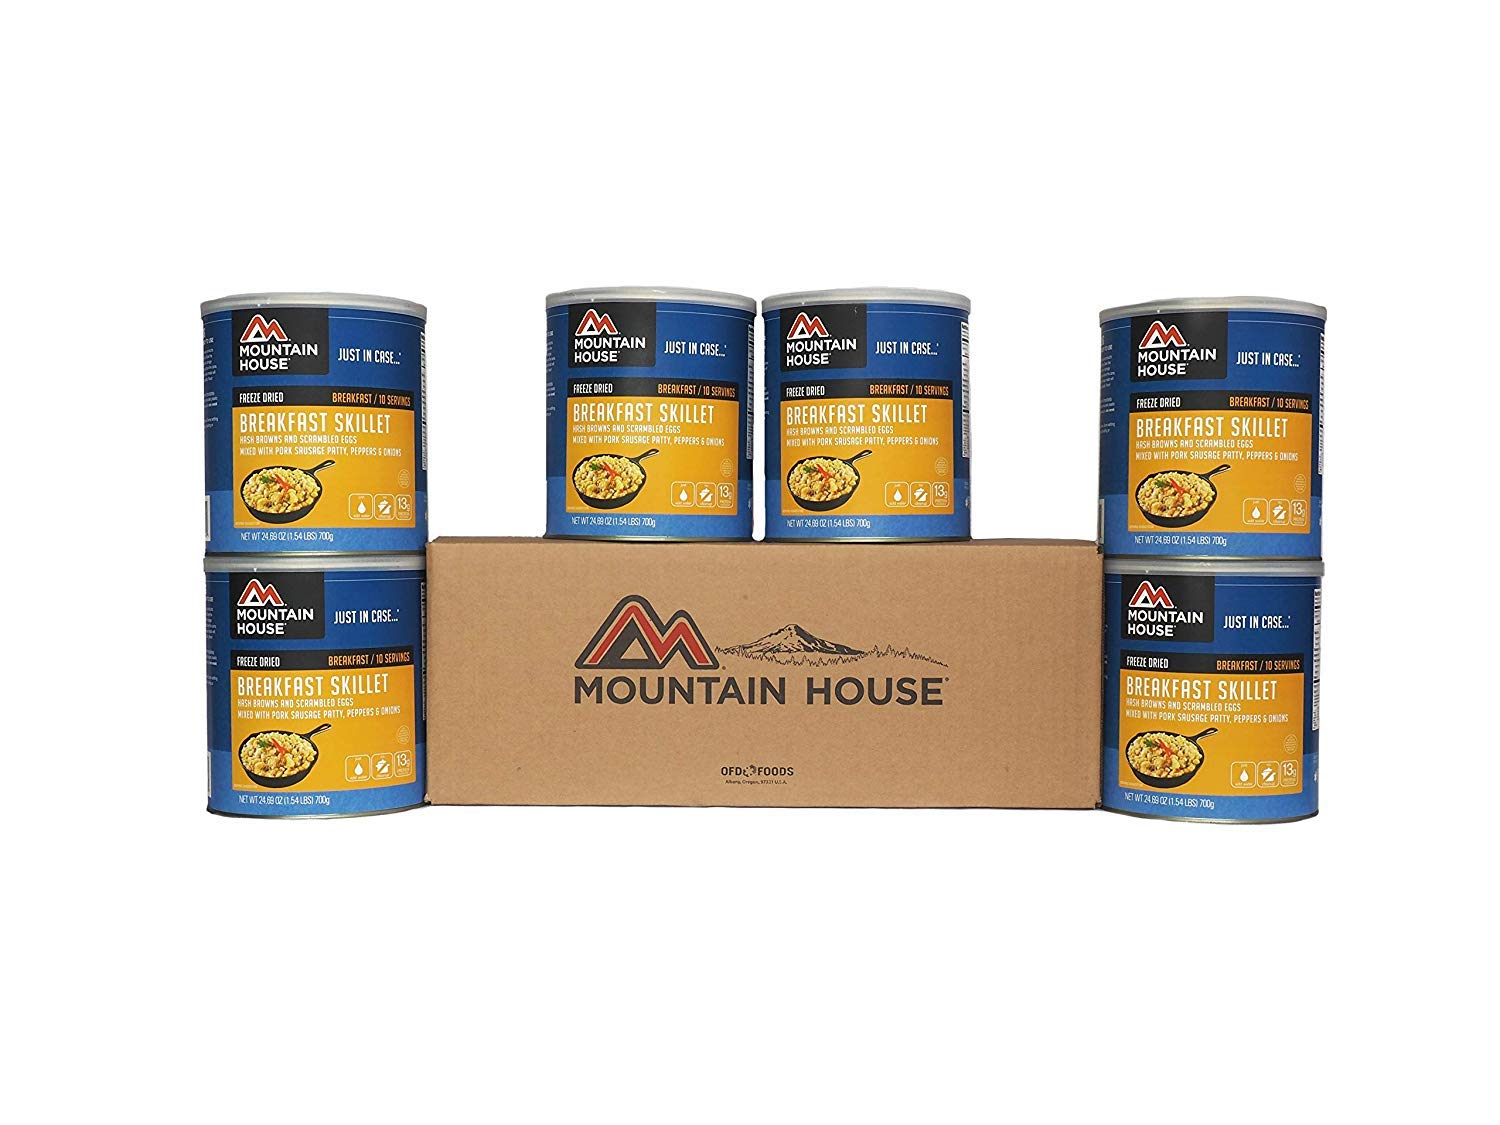 Mountain House Breakfast Skillet 6 Pack Cans - Six #10 Cans conveniently Packaged in one Easy-to-Store Box. Perfect for Emergency Food Storage or Survival Food. by Mountain House (Image #1)